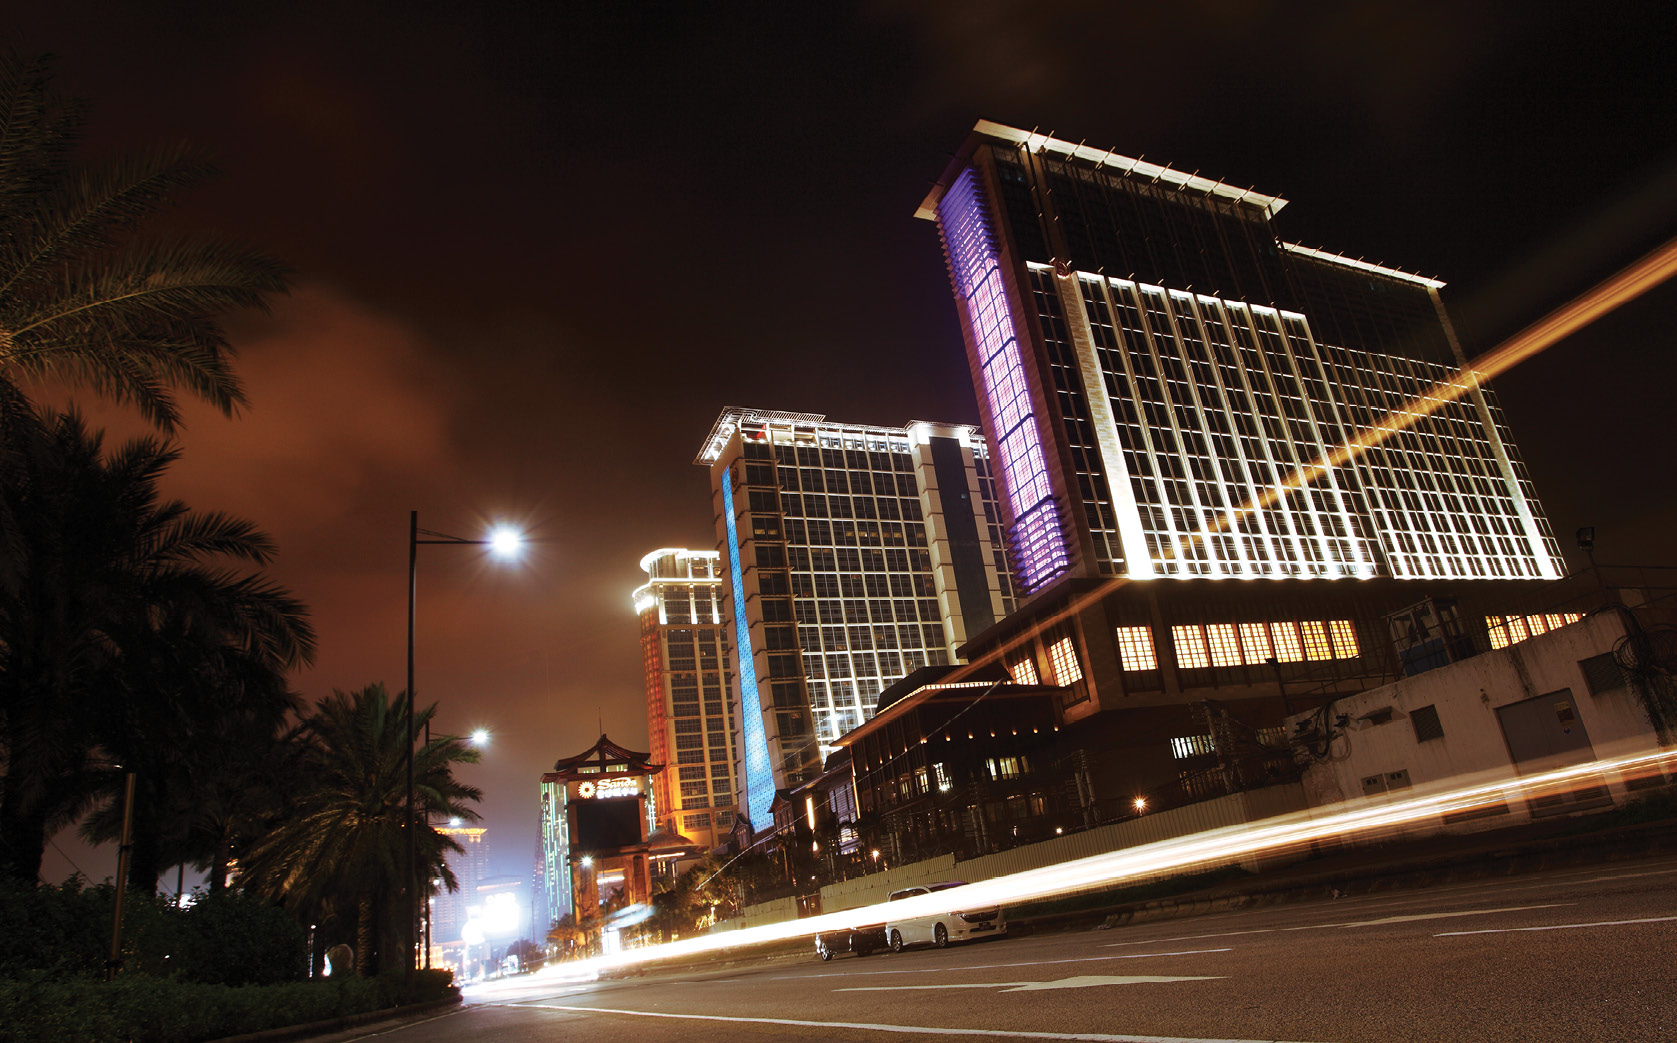 Macau's Cotai strip at night with an array of resort/casinos